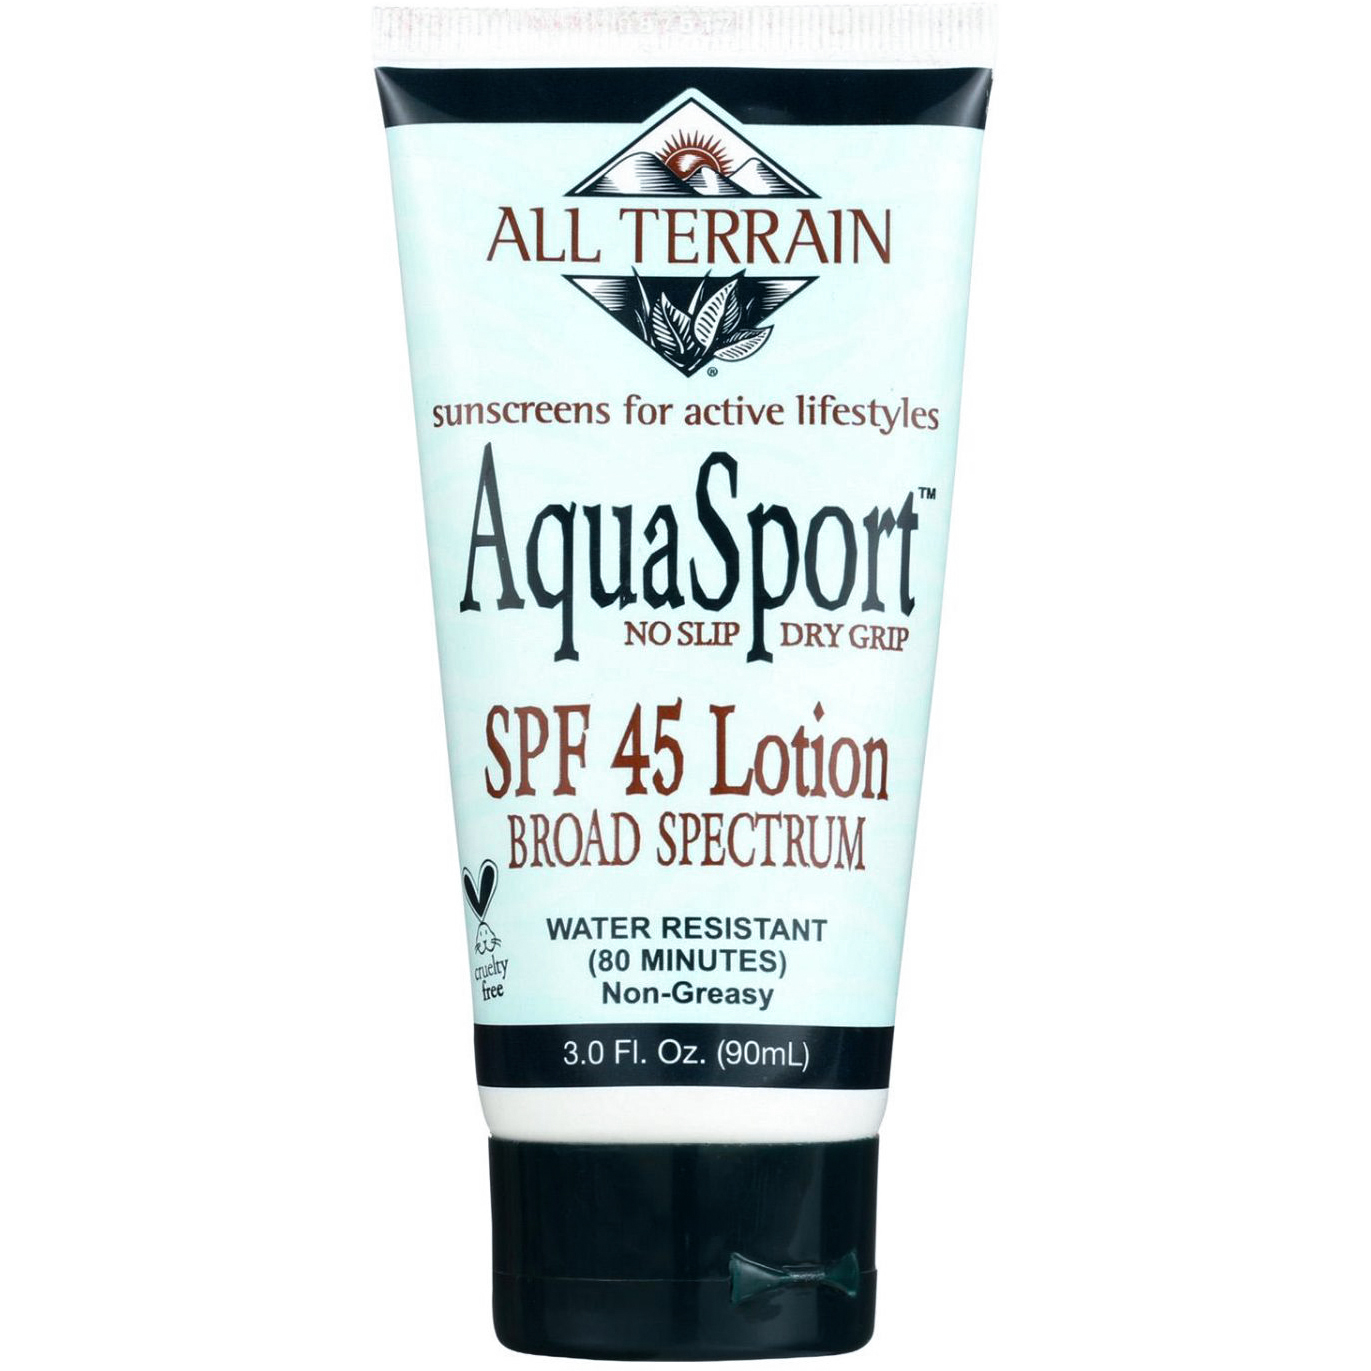 AQUA SPORT - SPF 45 LOTION BROAD SPECTRUM - 3oz